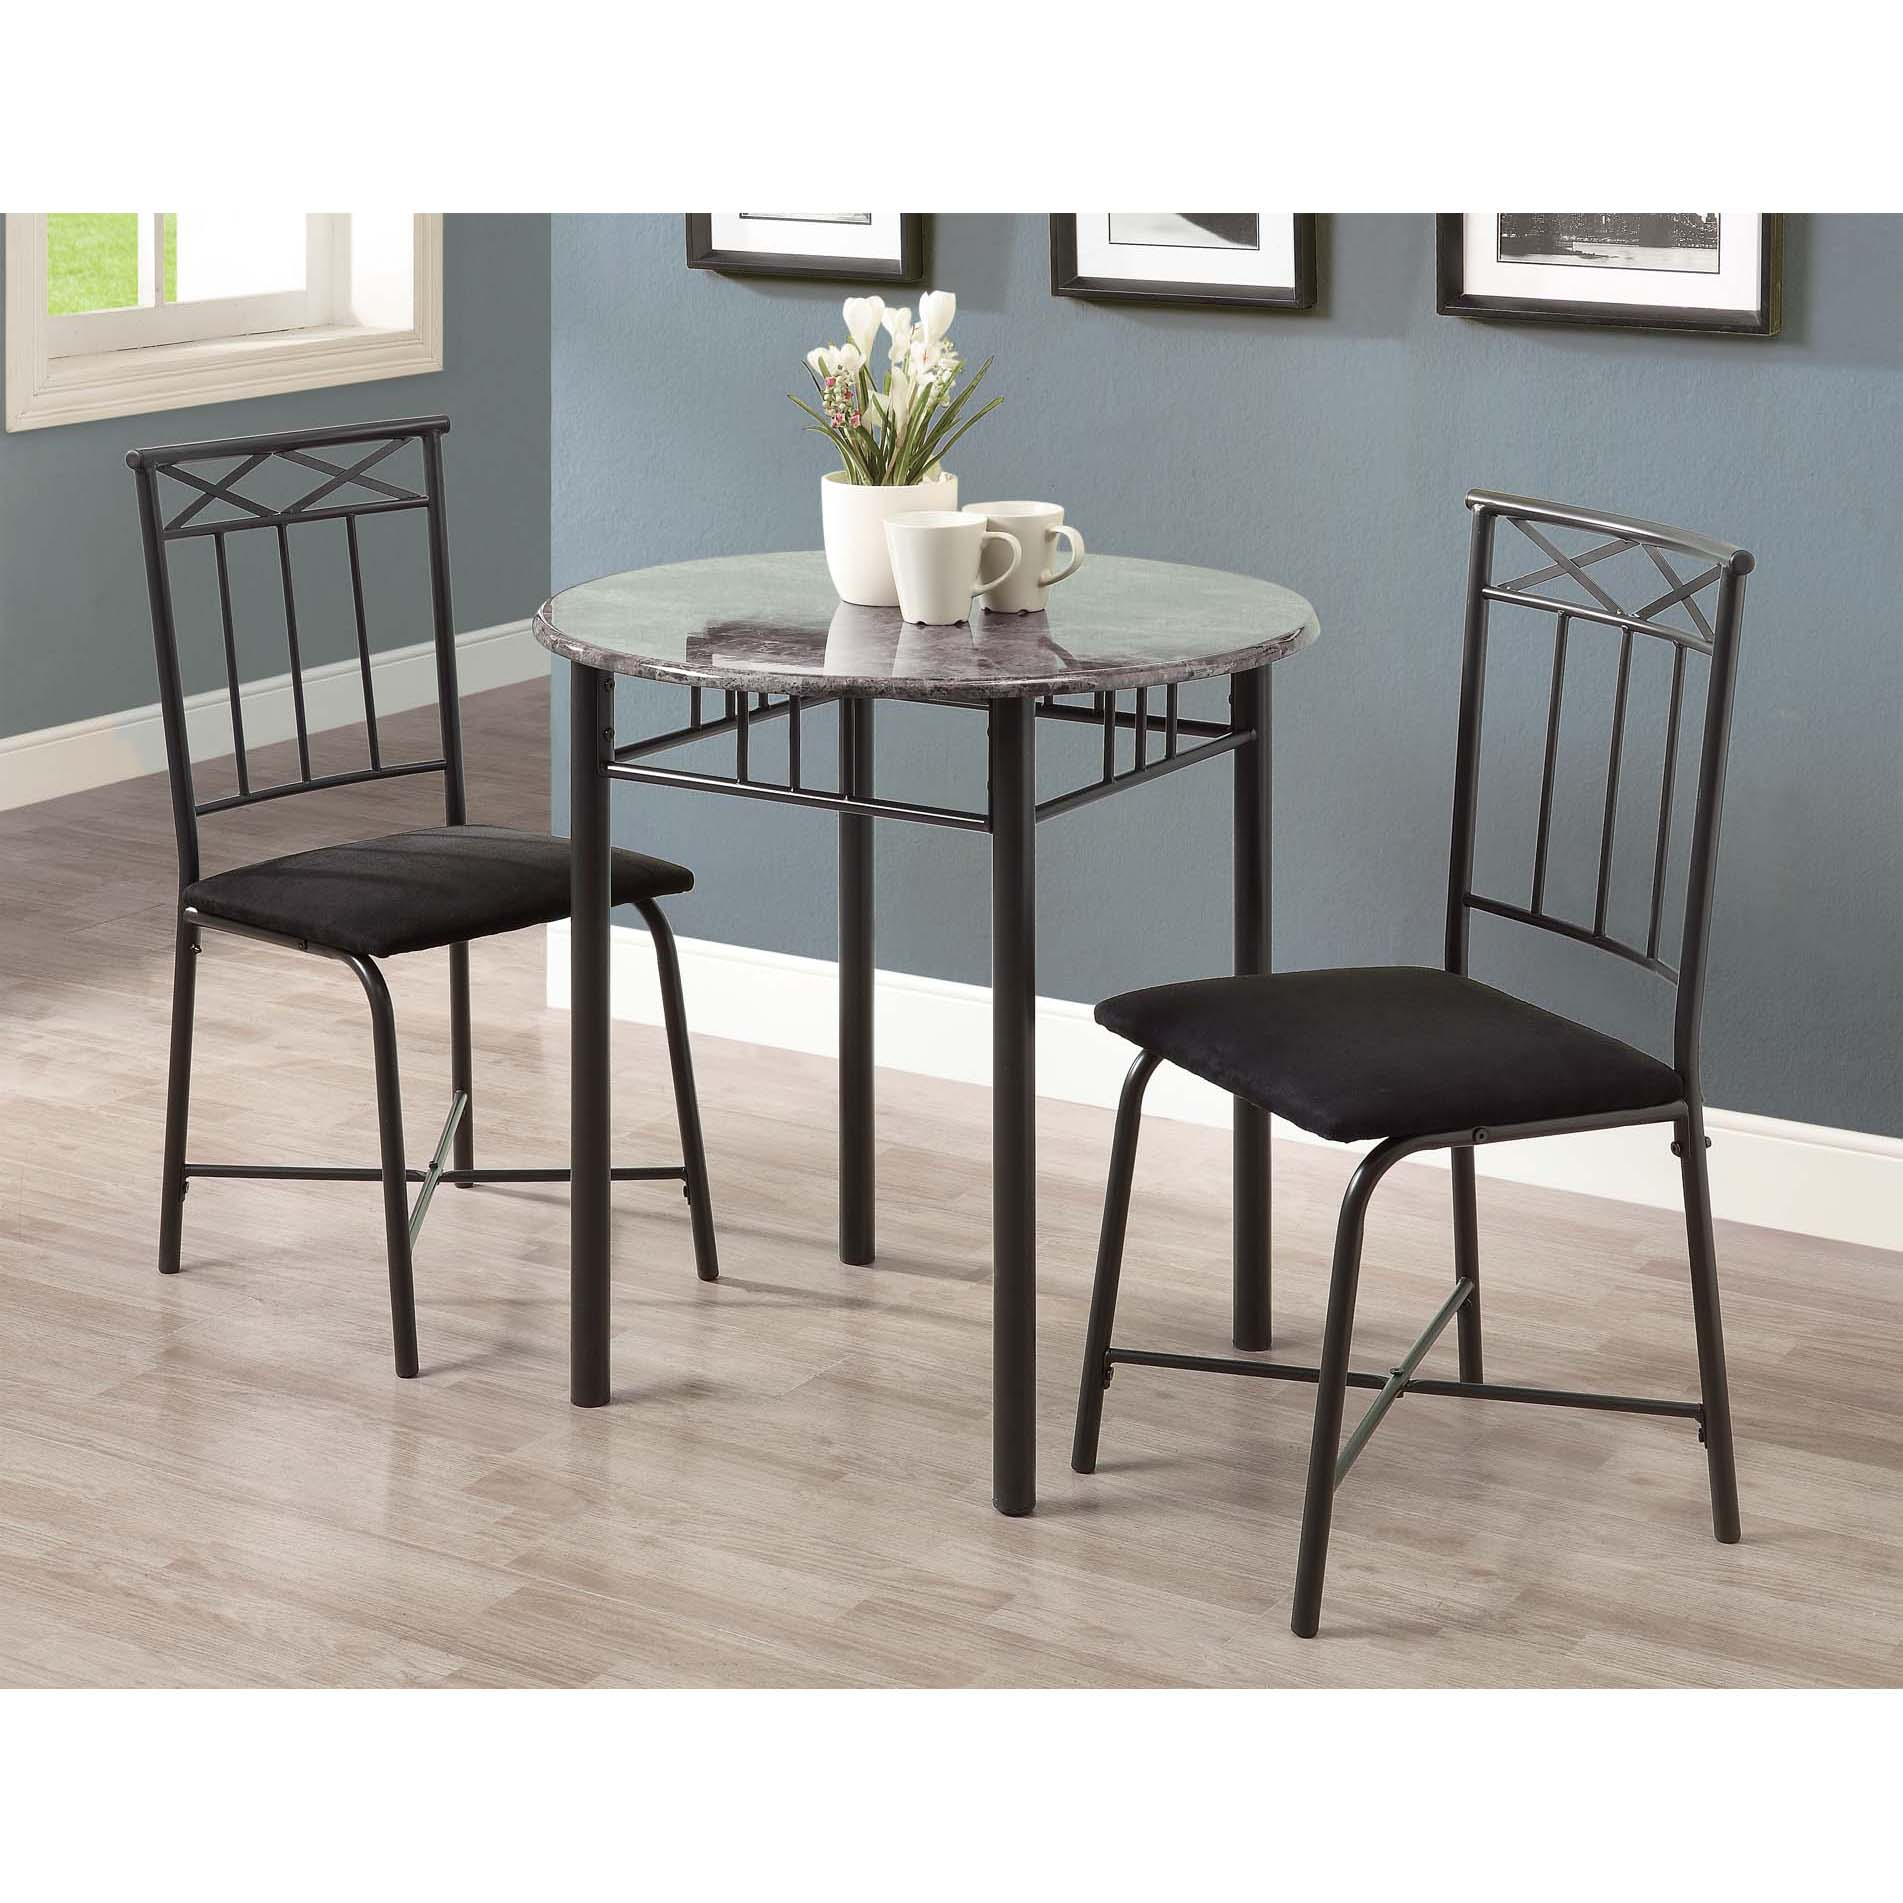 grey marble charcoal metal 3 piece bistro set free shipping today overstock 14346267. Black Bedroom Furniture Sets. Home Design Ideas